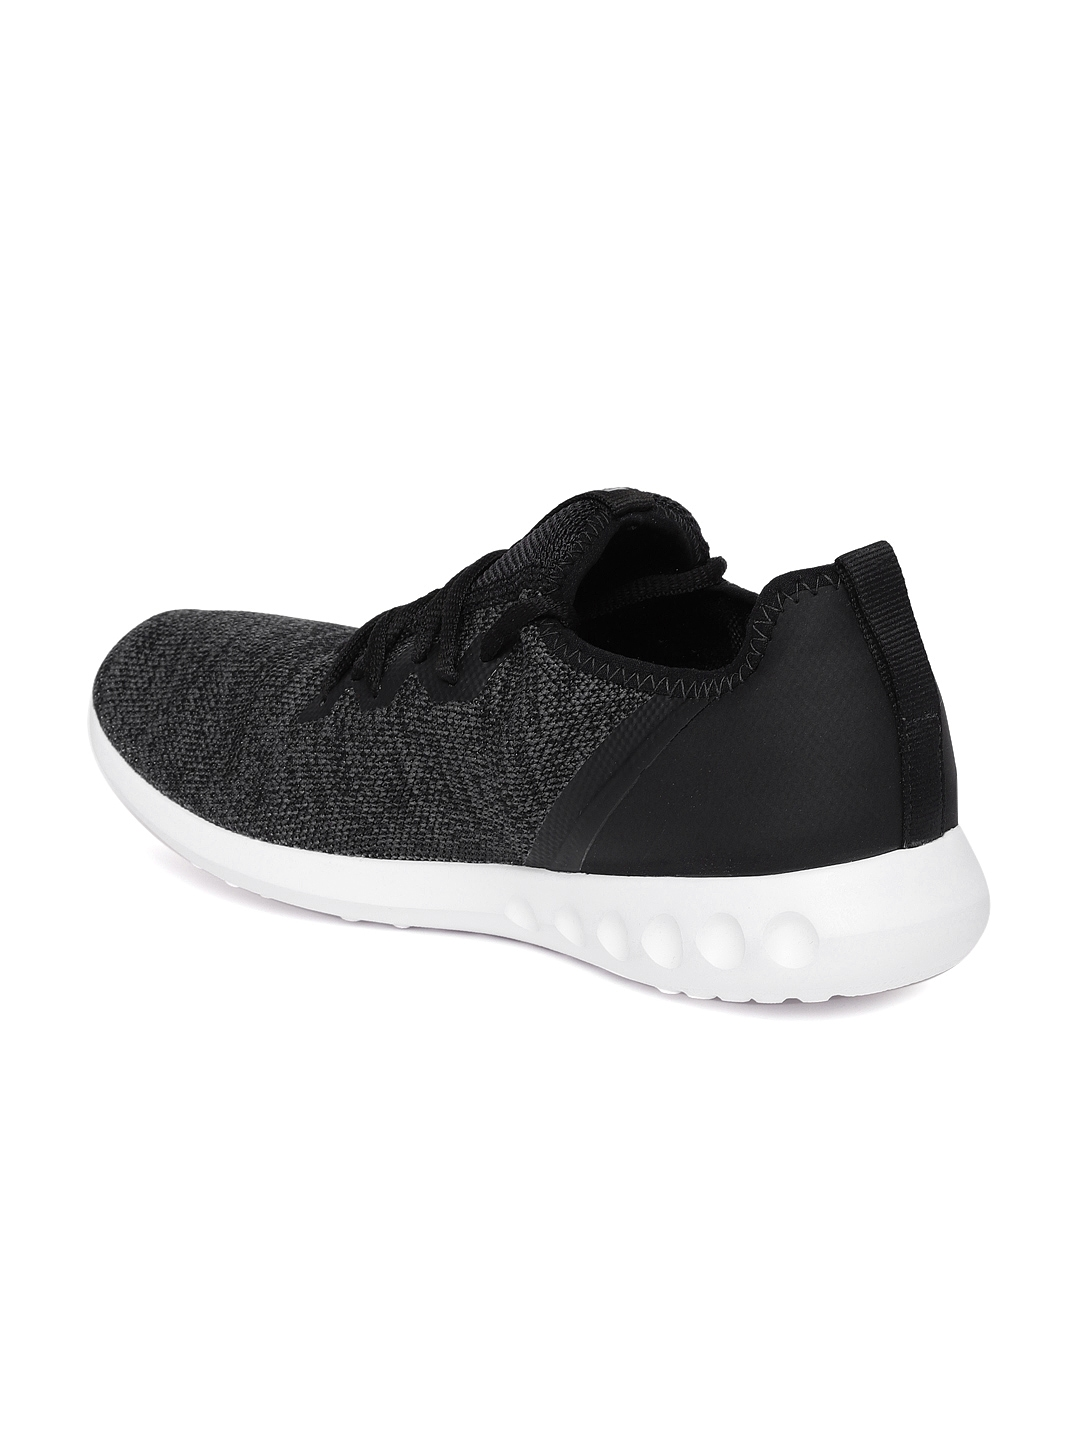 a9730aaa71f6 Buy Puma Men Black Carson 2 X Knit IDP Running Shoes - Sports Shoes ...